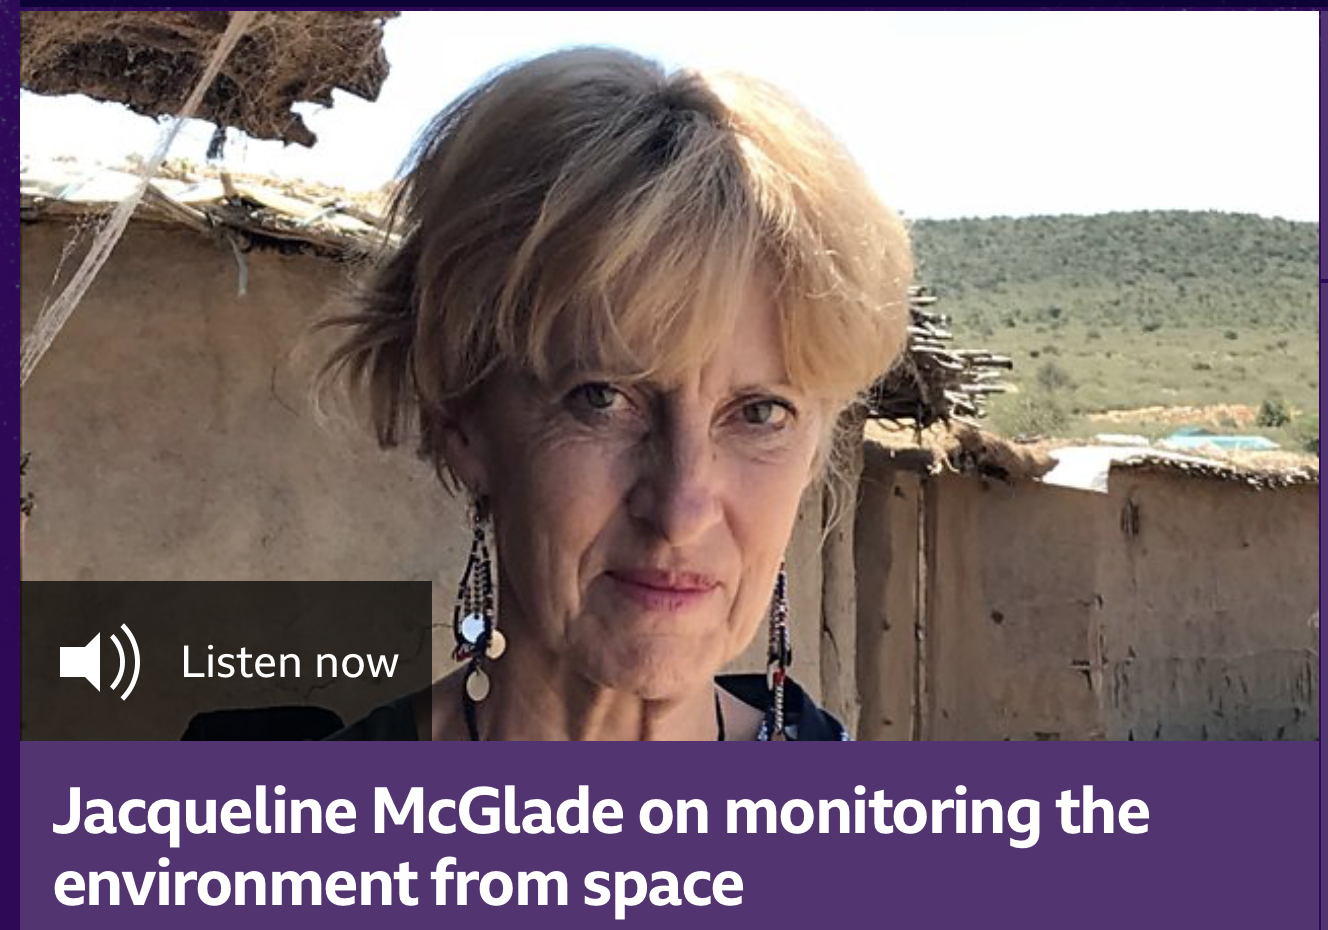 Jacqueline McGlade on monitoring the environment from space